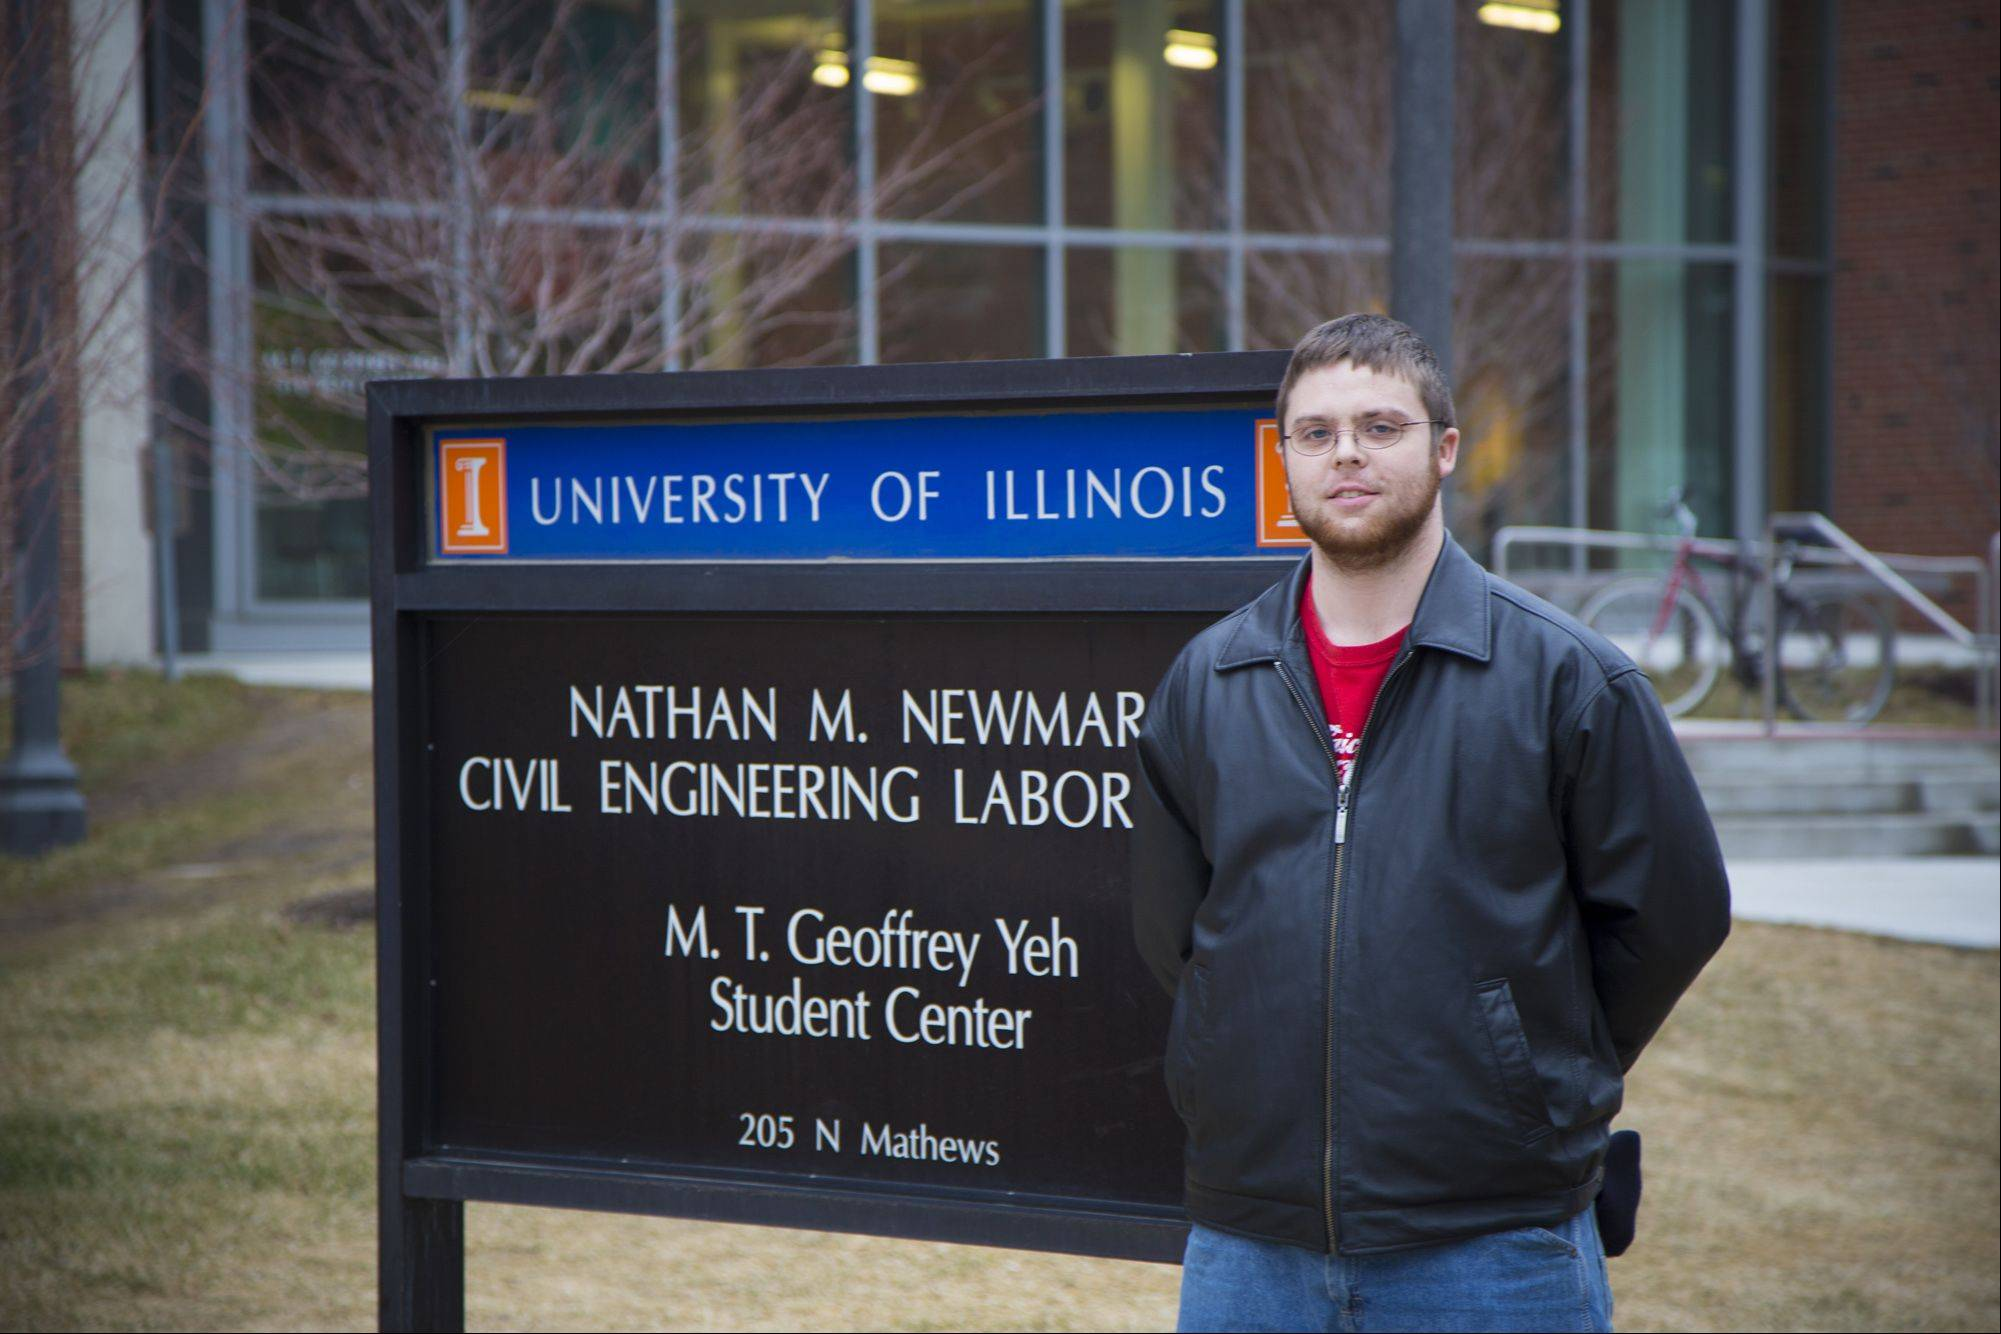 Joe Riddle of Aurora will be $78,000 in debt when he completes the graduate program in engineering at the University of Illinois at Urbana-Champaign. It's a situation facing more college students as Illinois' budget woes have led to higher tuition and less state aid at public universities.